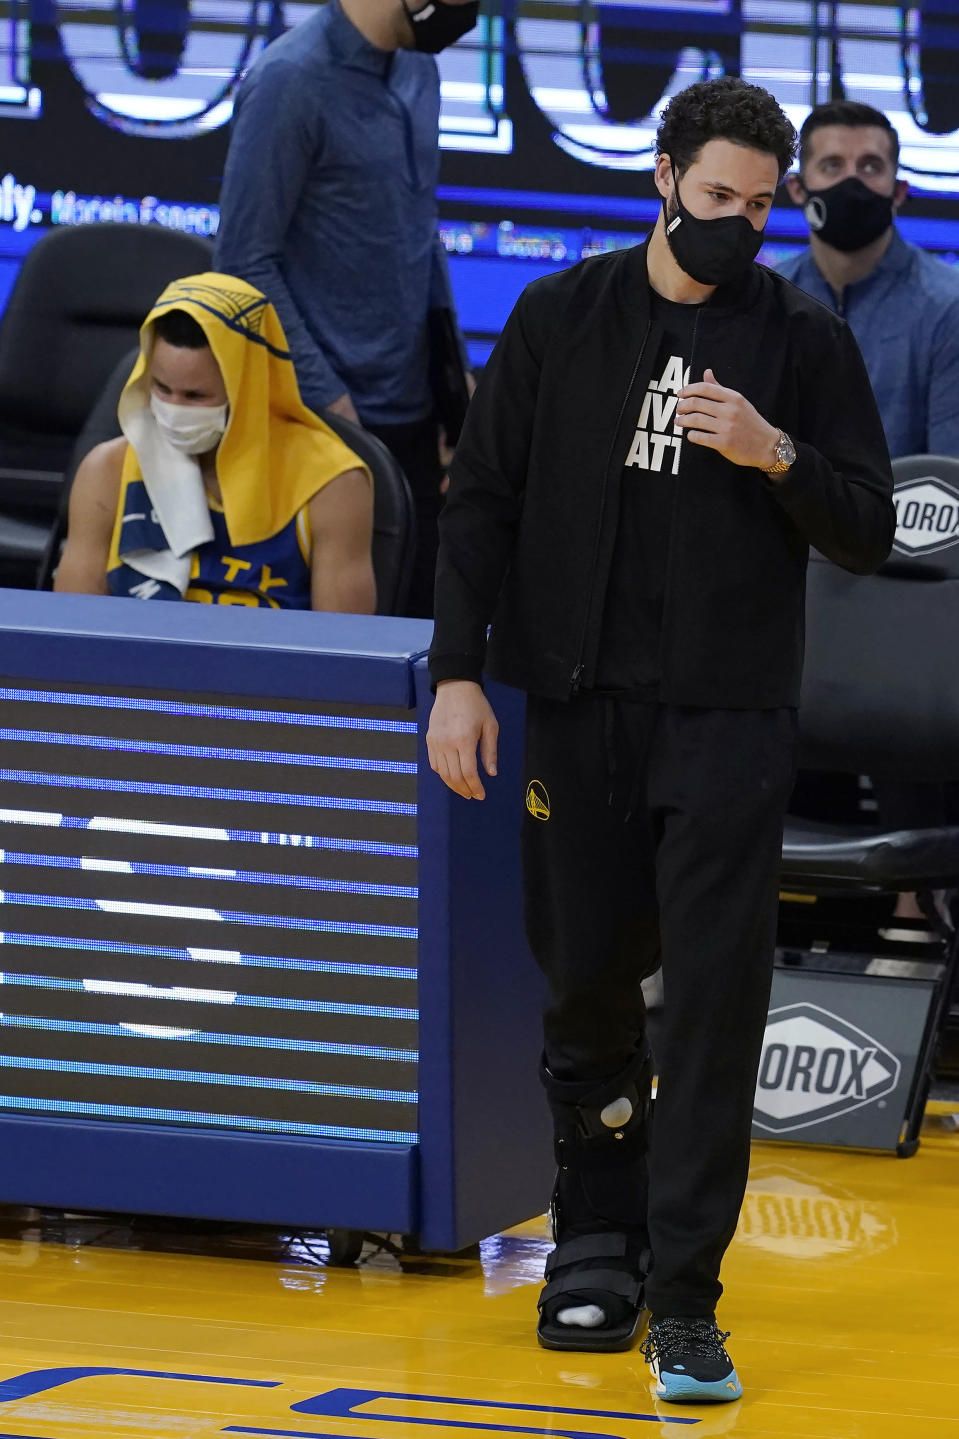 Injured Golden State Warriors guard Klay Thompson, right, walks next to guard Stephen Curry during the first half of the team's NBA basketball game against the New York Knicks in San Francisco, Thursday, Jan. 21, 2021. (AP Photo/Jeff Chiu)